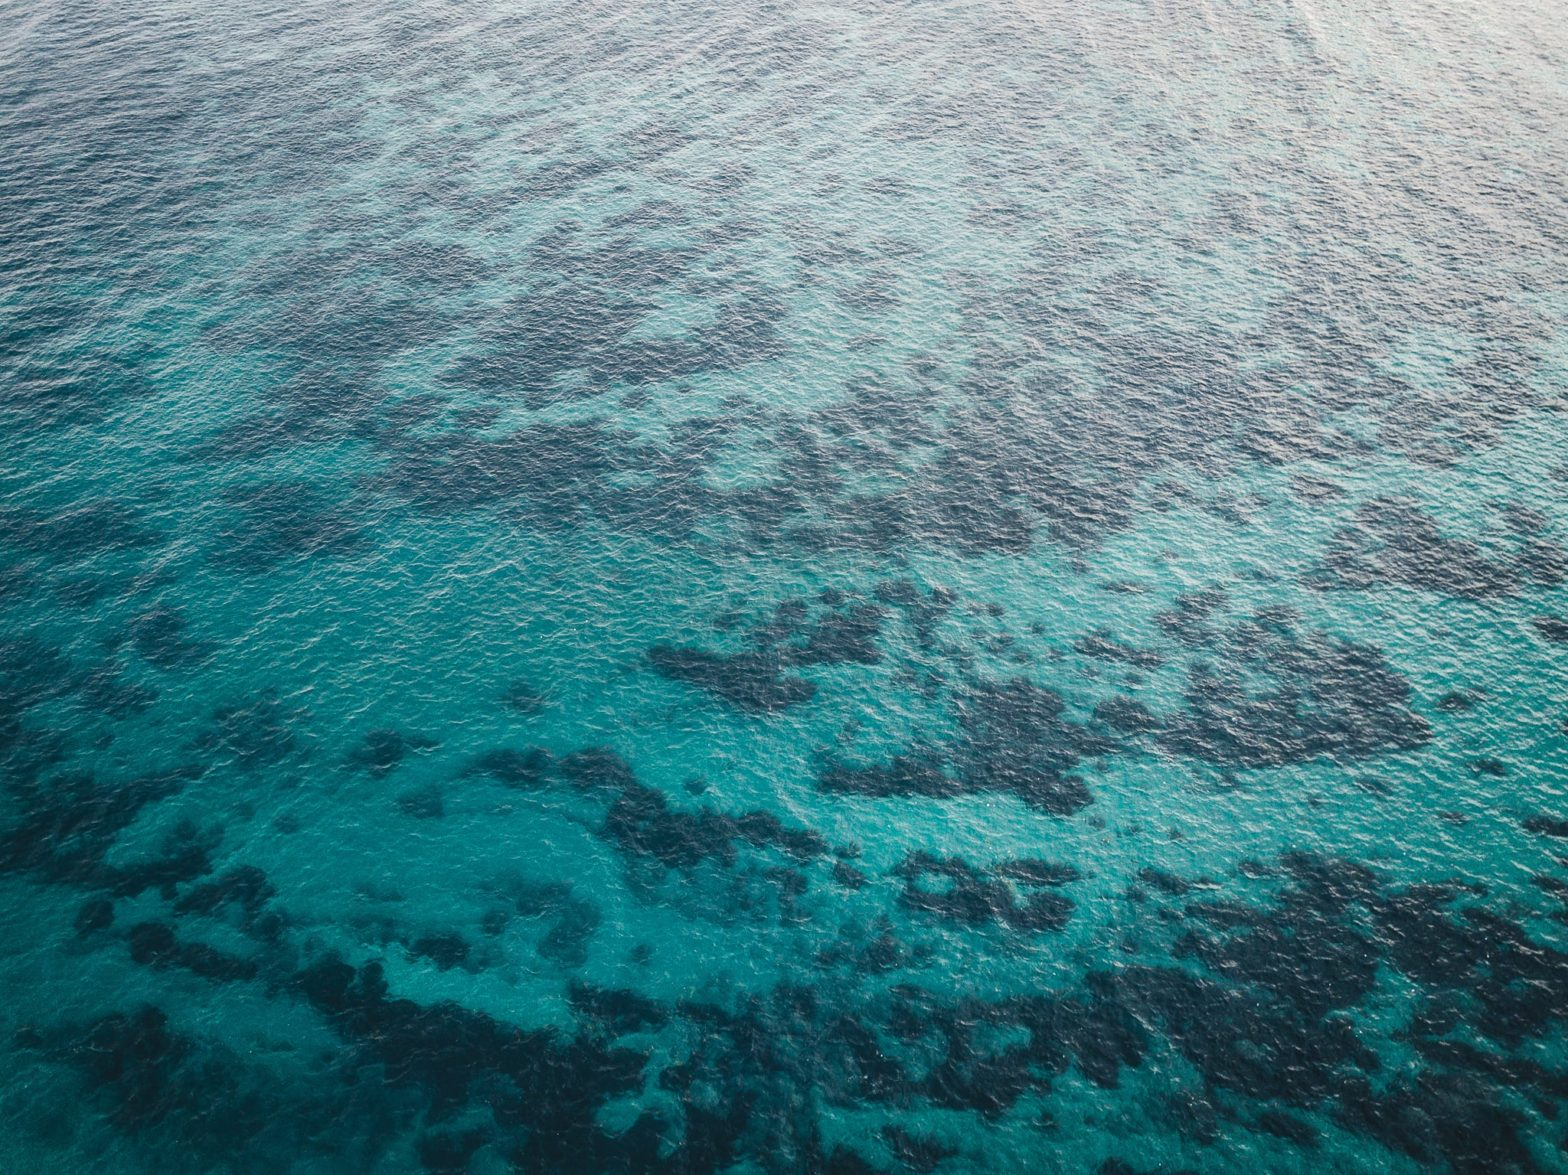 Aerial view of turquoise water in the bay with patches of darker seafloor visible